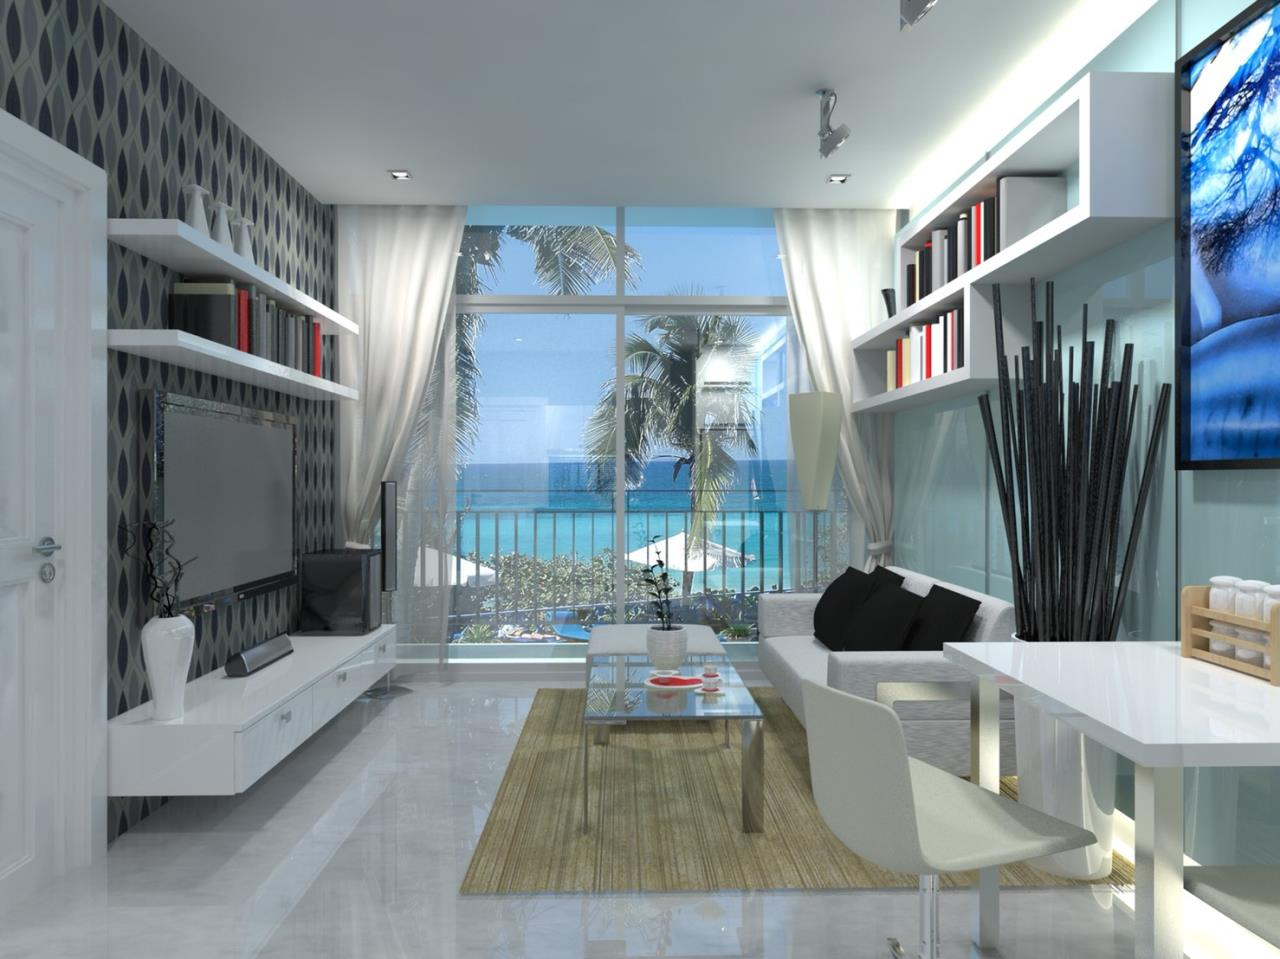 Signature Realty ( Thailand ) Co Ltd Agency's Furnished 1bedroom 46 sq.m condo with jacuzzi floor 2-10 at The Grand Jomtein Beach Pattaya 22